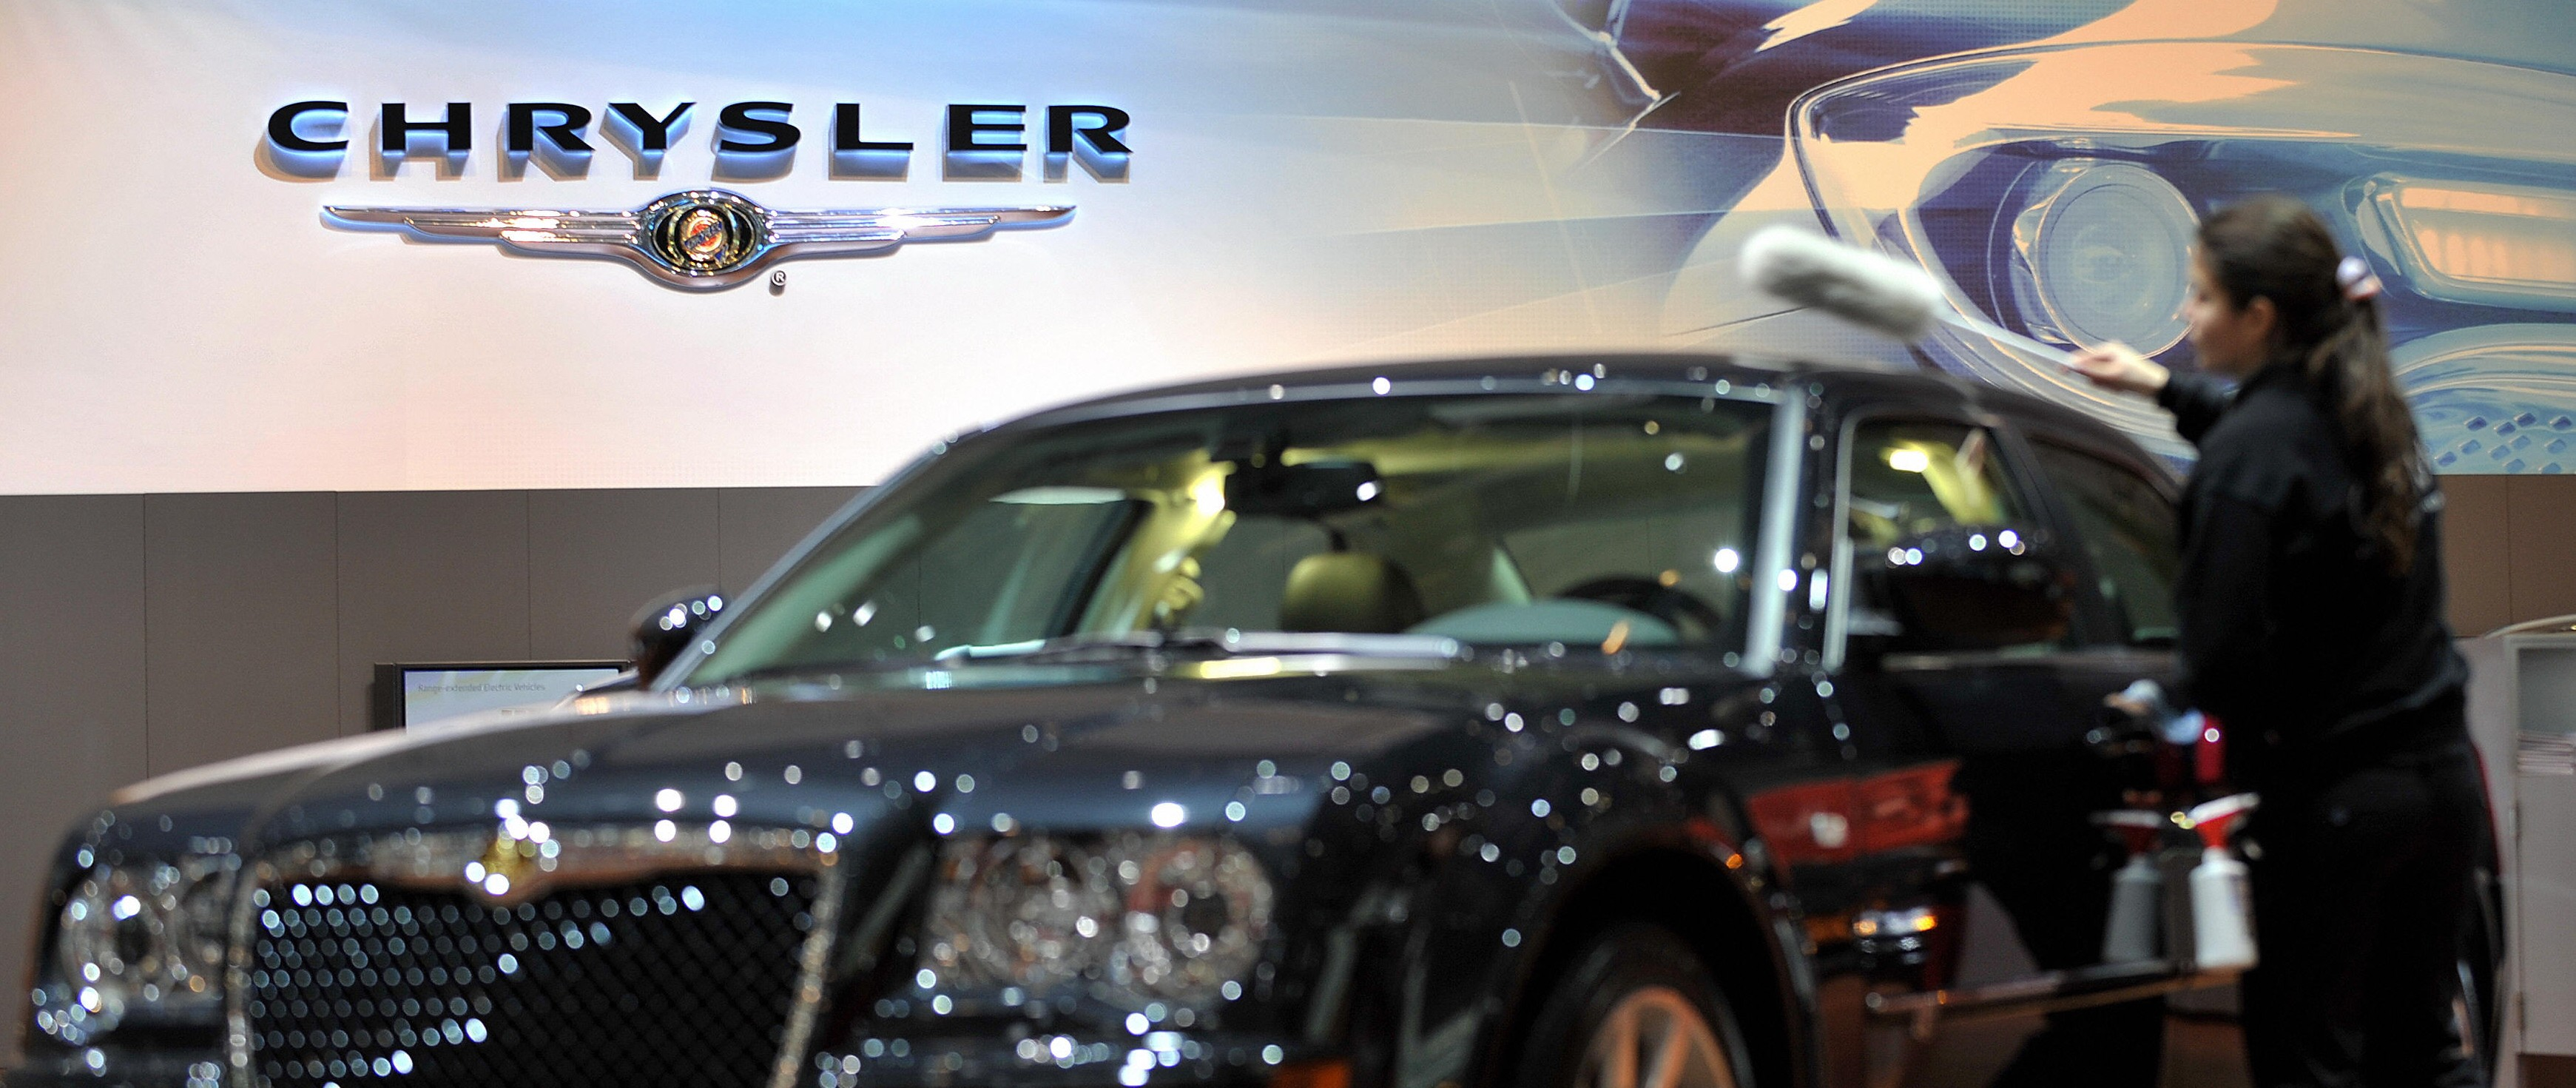 A cleaner wipes a car at the Chrysler bo